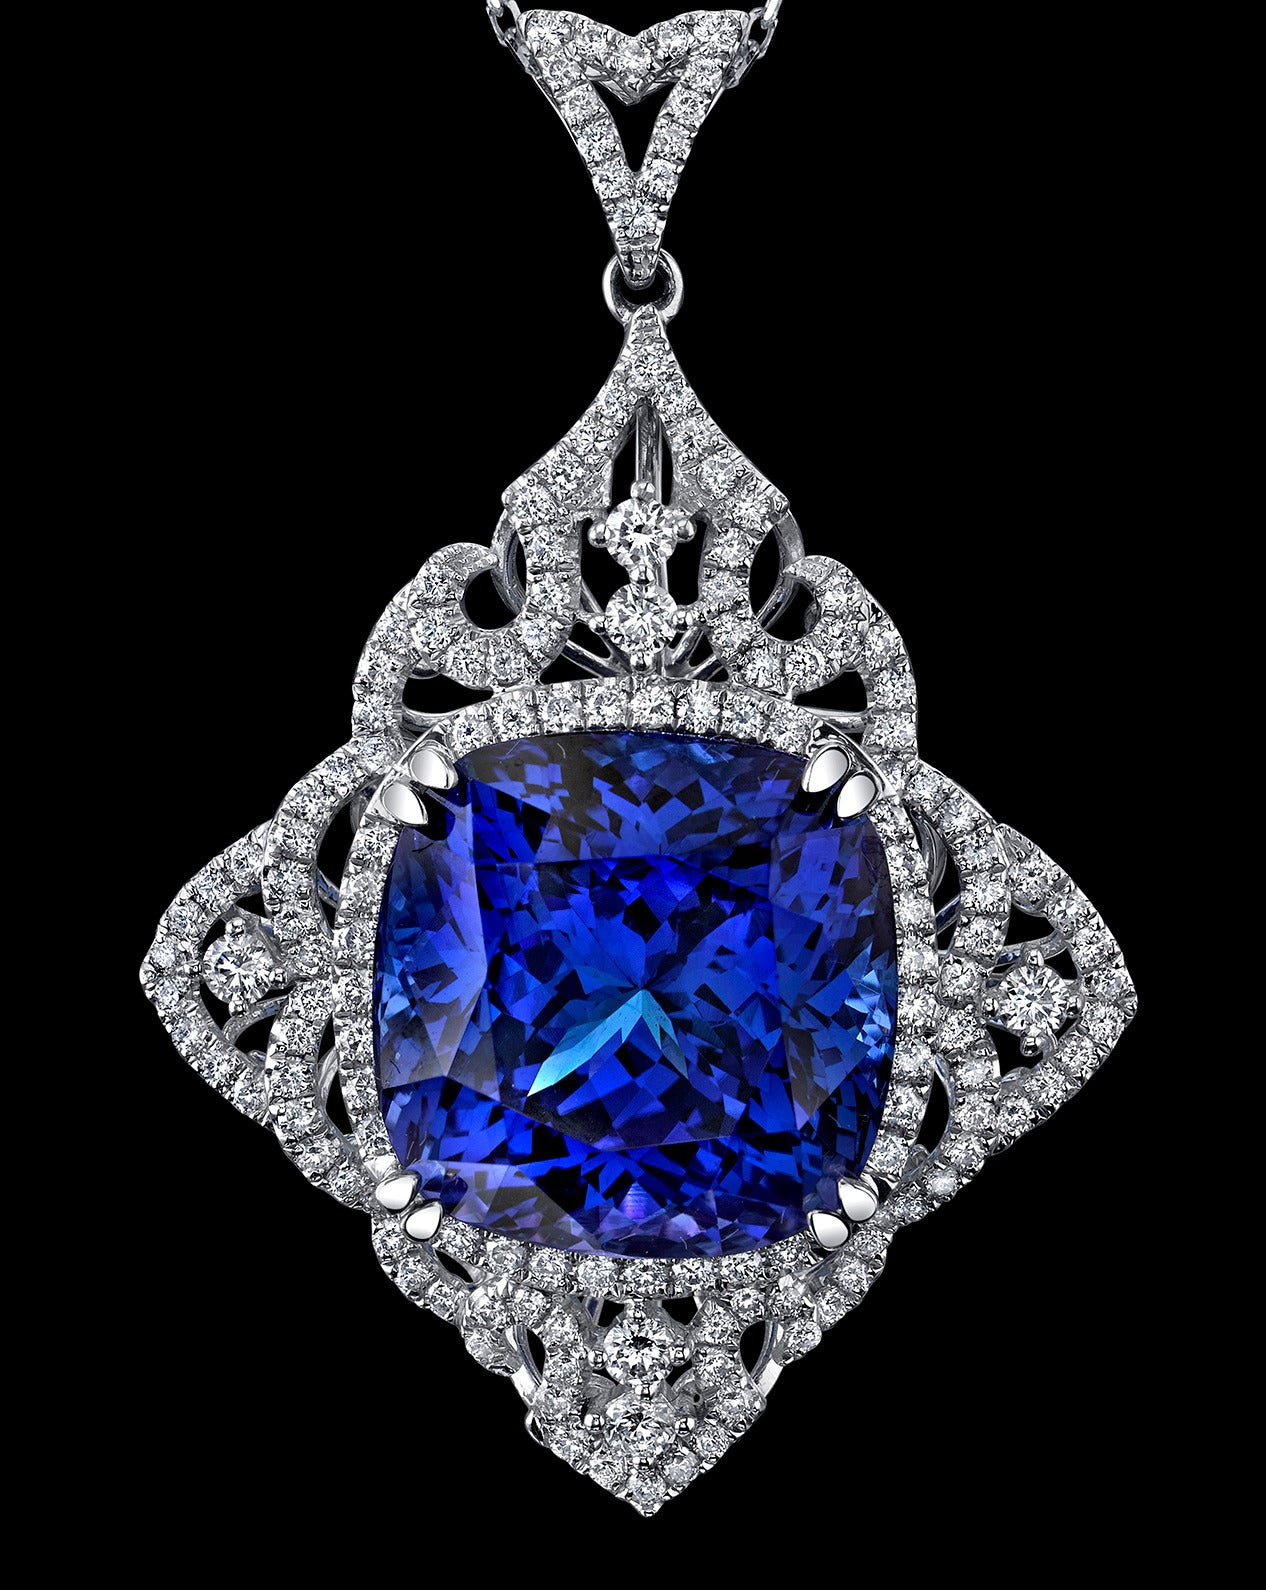 Featuring a Beautiful Square Cushion-cut Tanzanite; 17.5mm X 17.5mm; approx weight: 29.51ct; surrounded by round-cut Diamonds; approx. 1.924tctwt; hand crafted in 18K White Gold. Classic and Timeless!